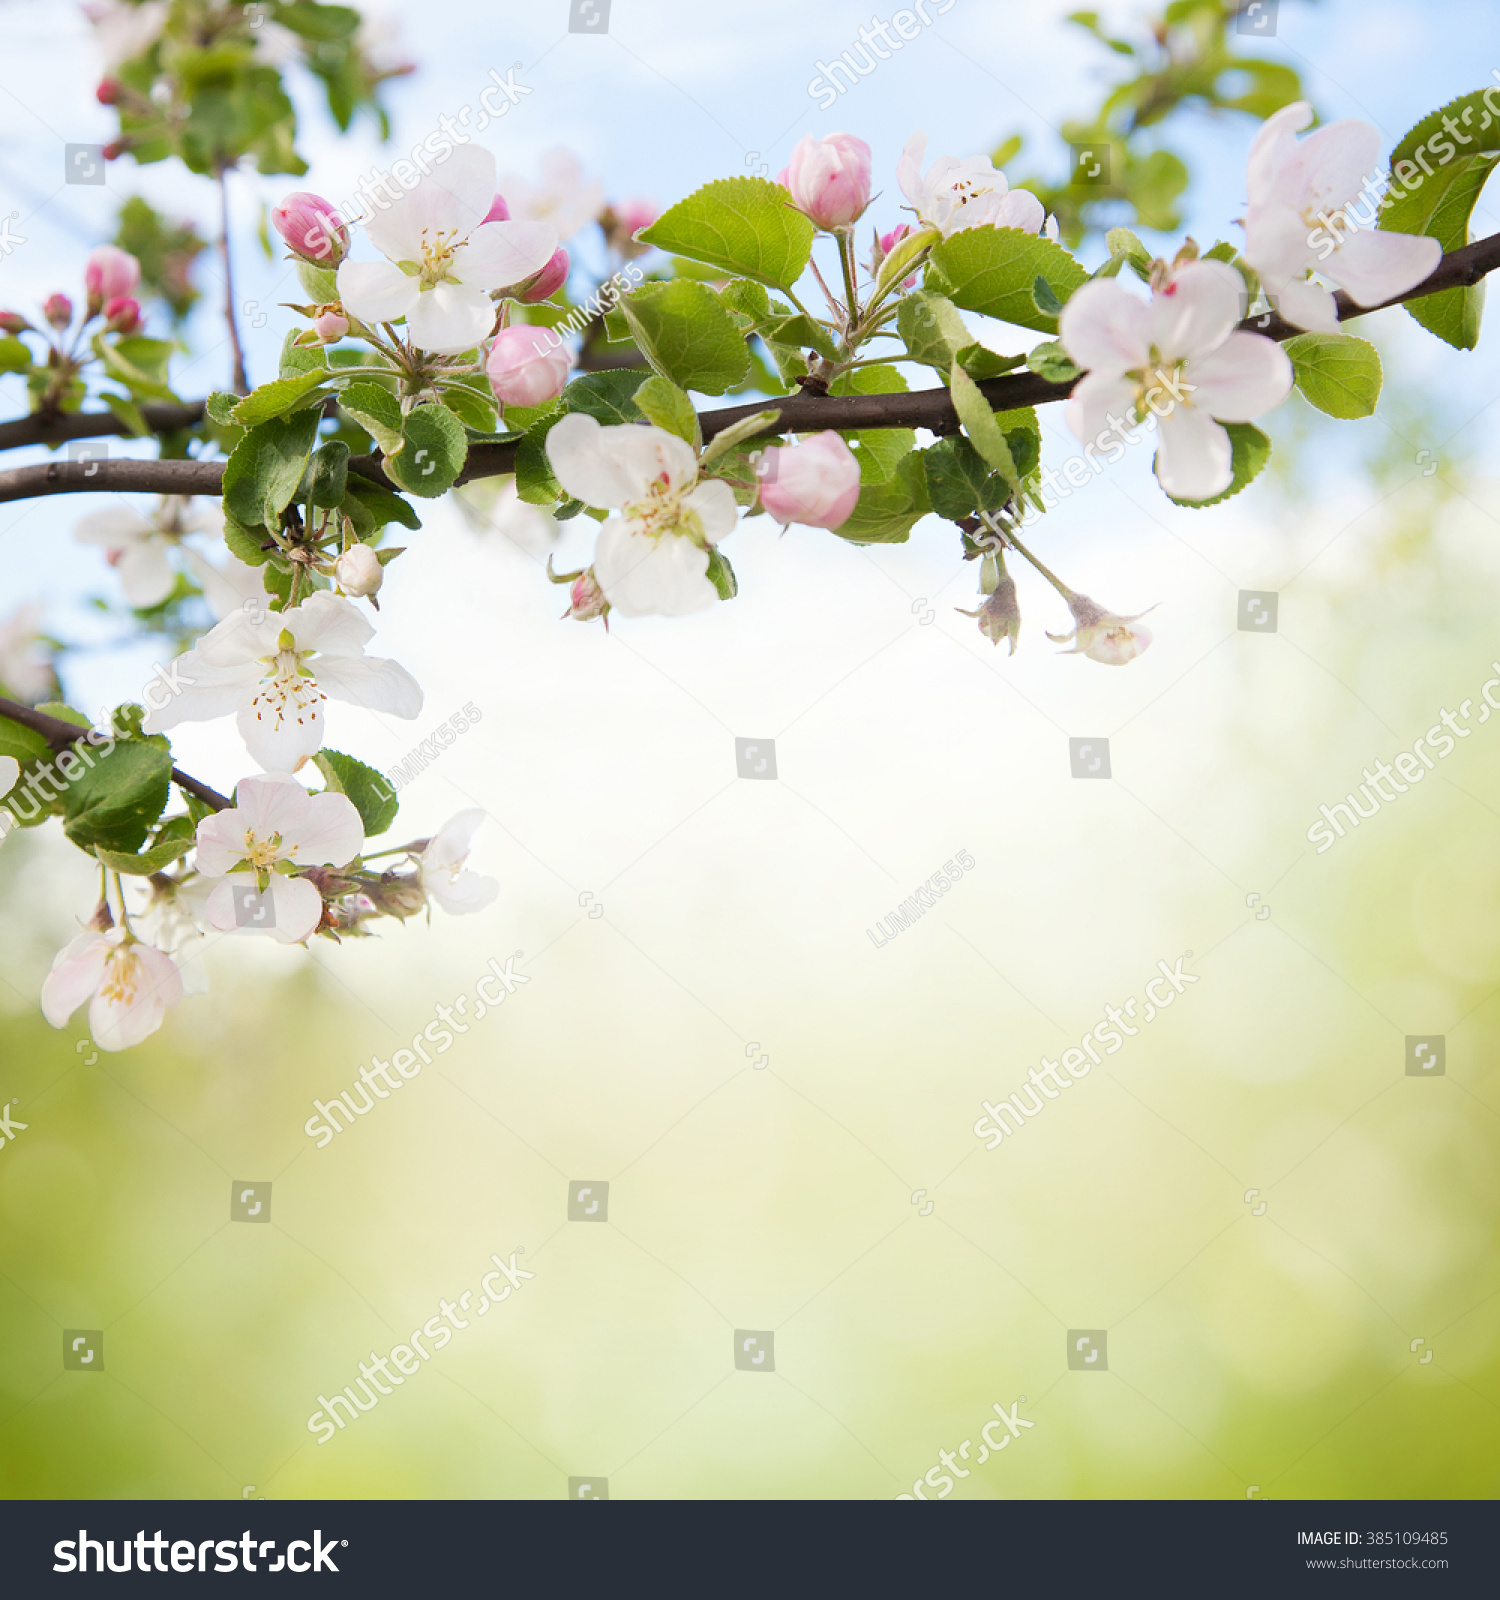 Nature Floral Background Of White Blooming Apple Tree Closeup Branch Flowers On Blurred